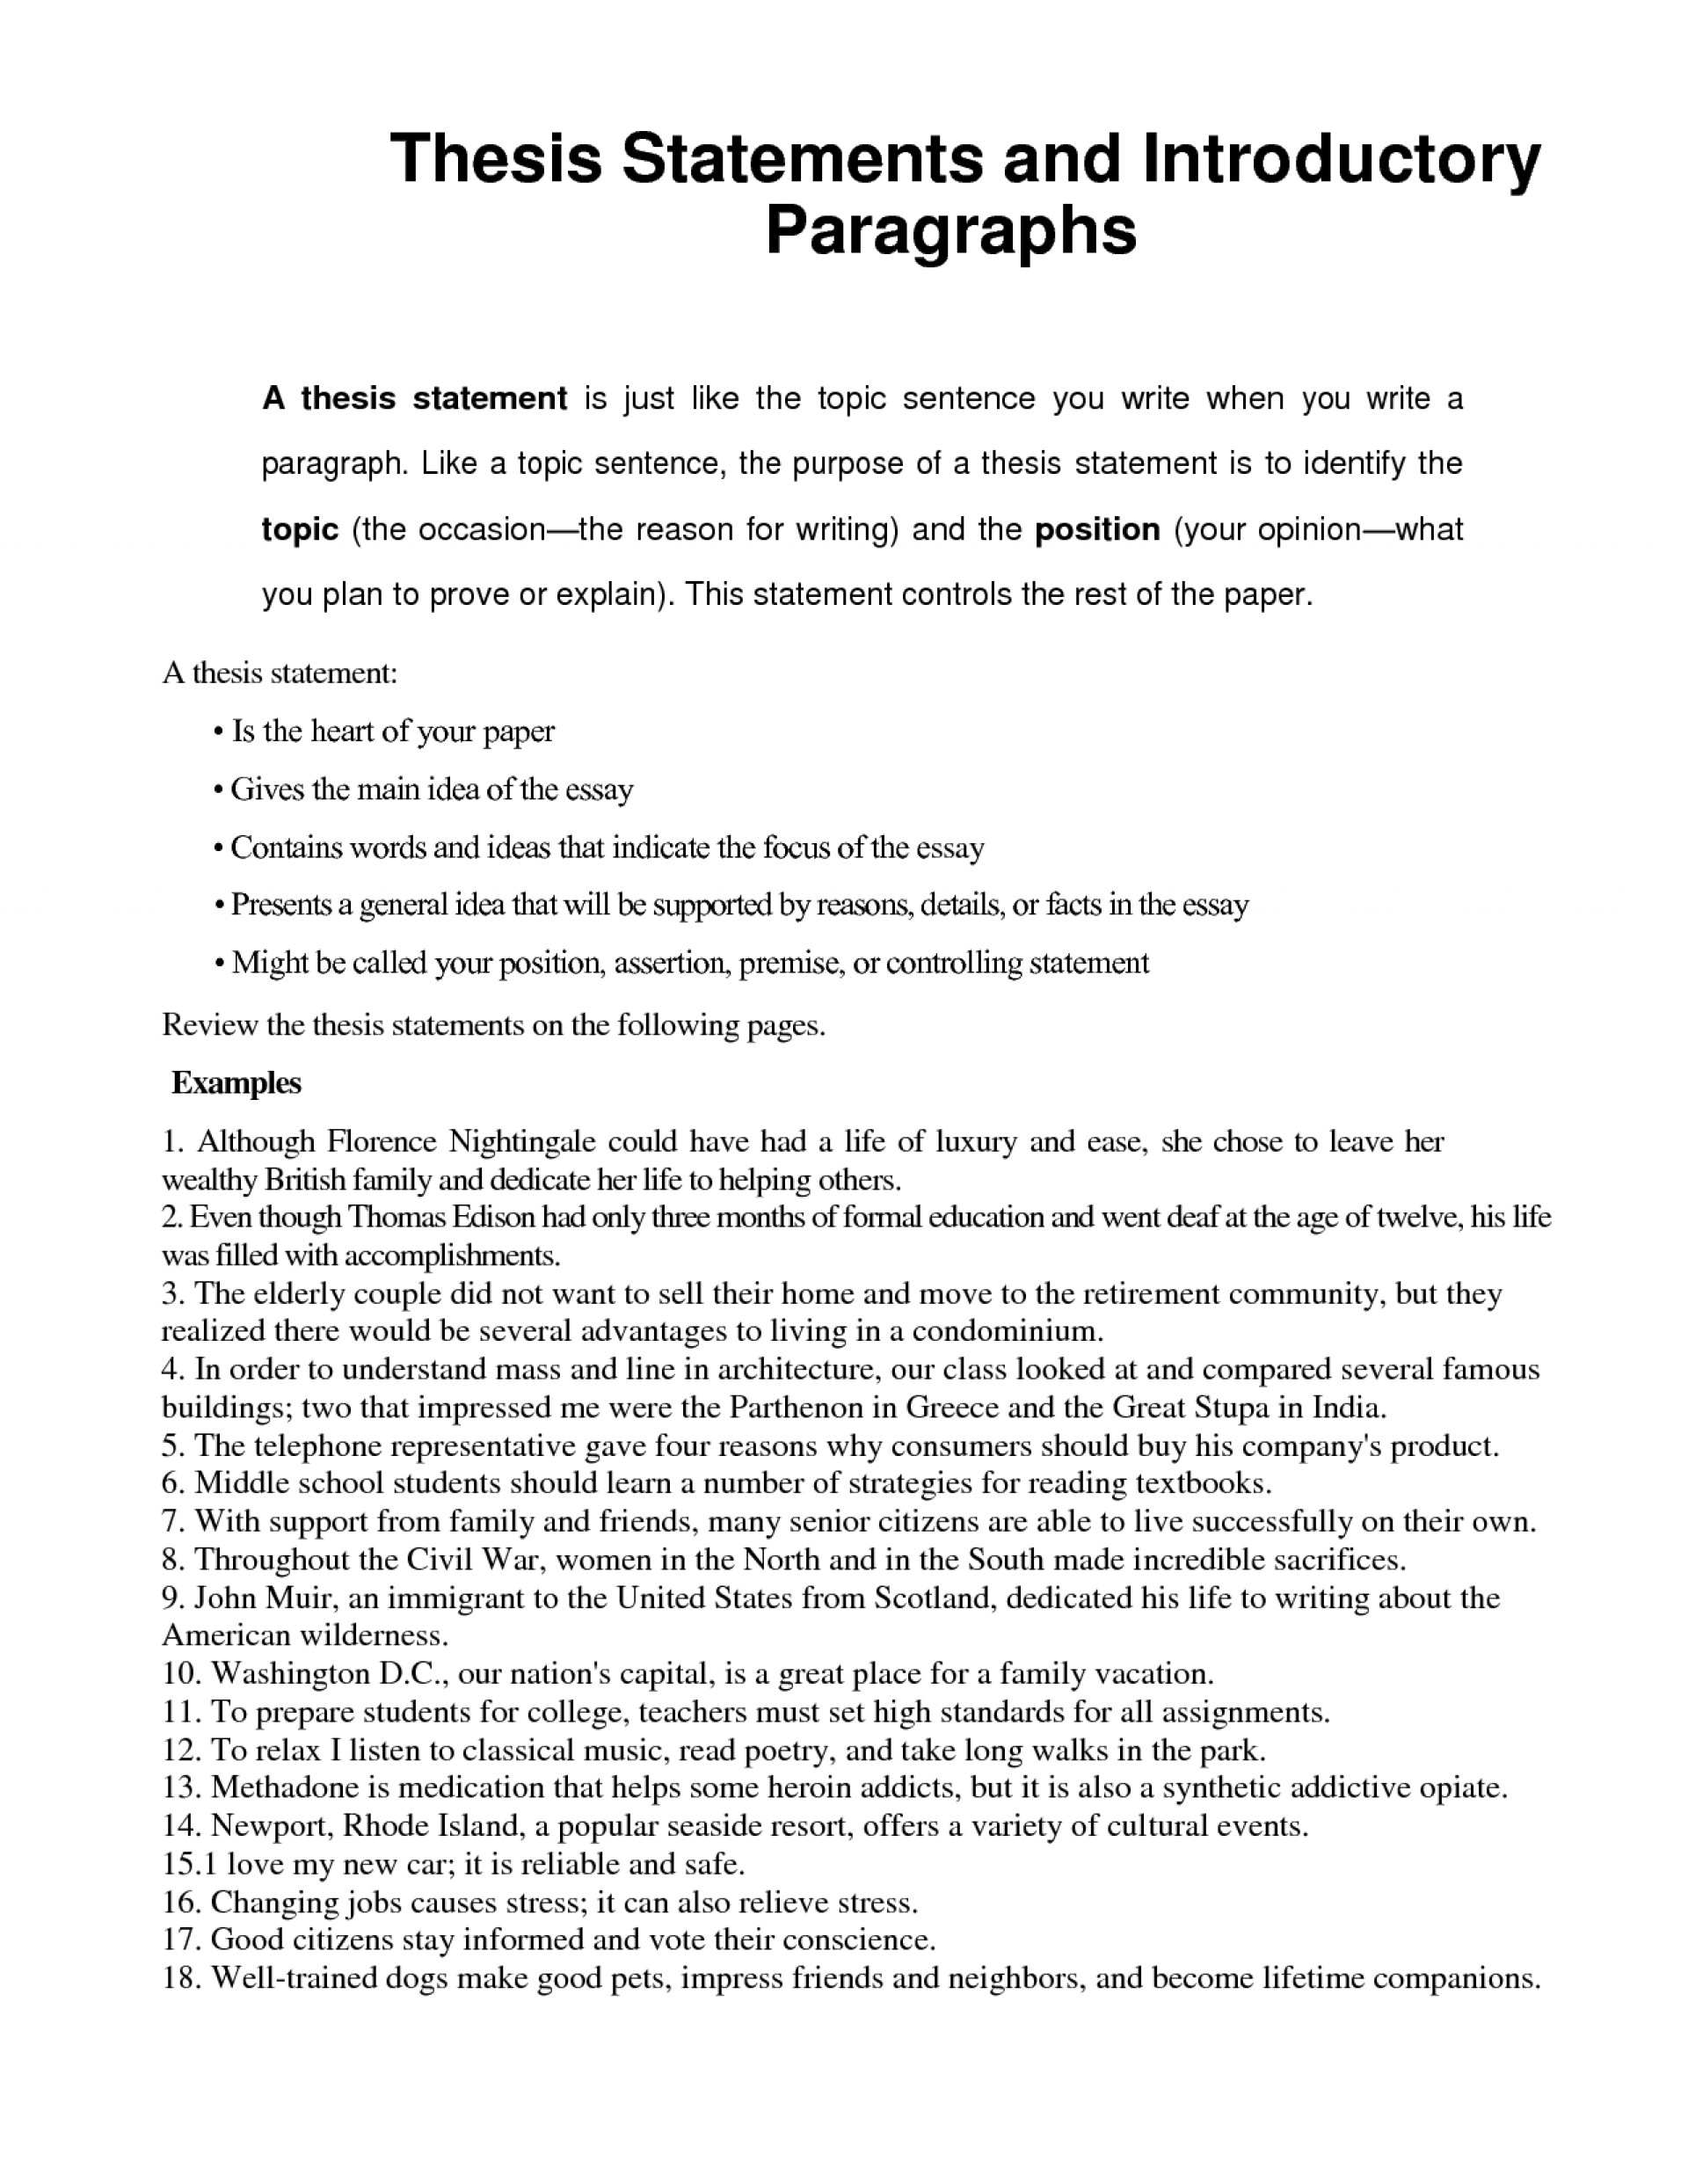 009 Water Pollution Essay Example Thesis Statement For Saving The Environment Xxp4v Incredible In Hindi Pdf Download Odia Kannada 1920